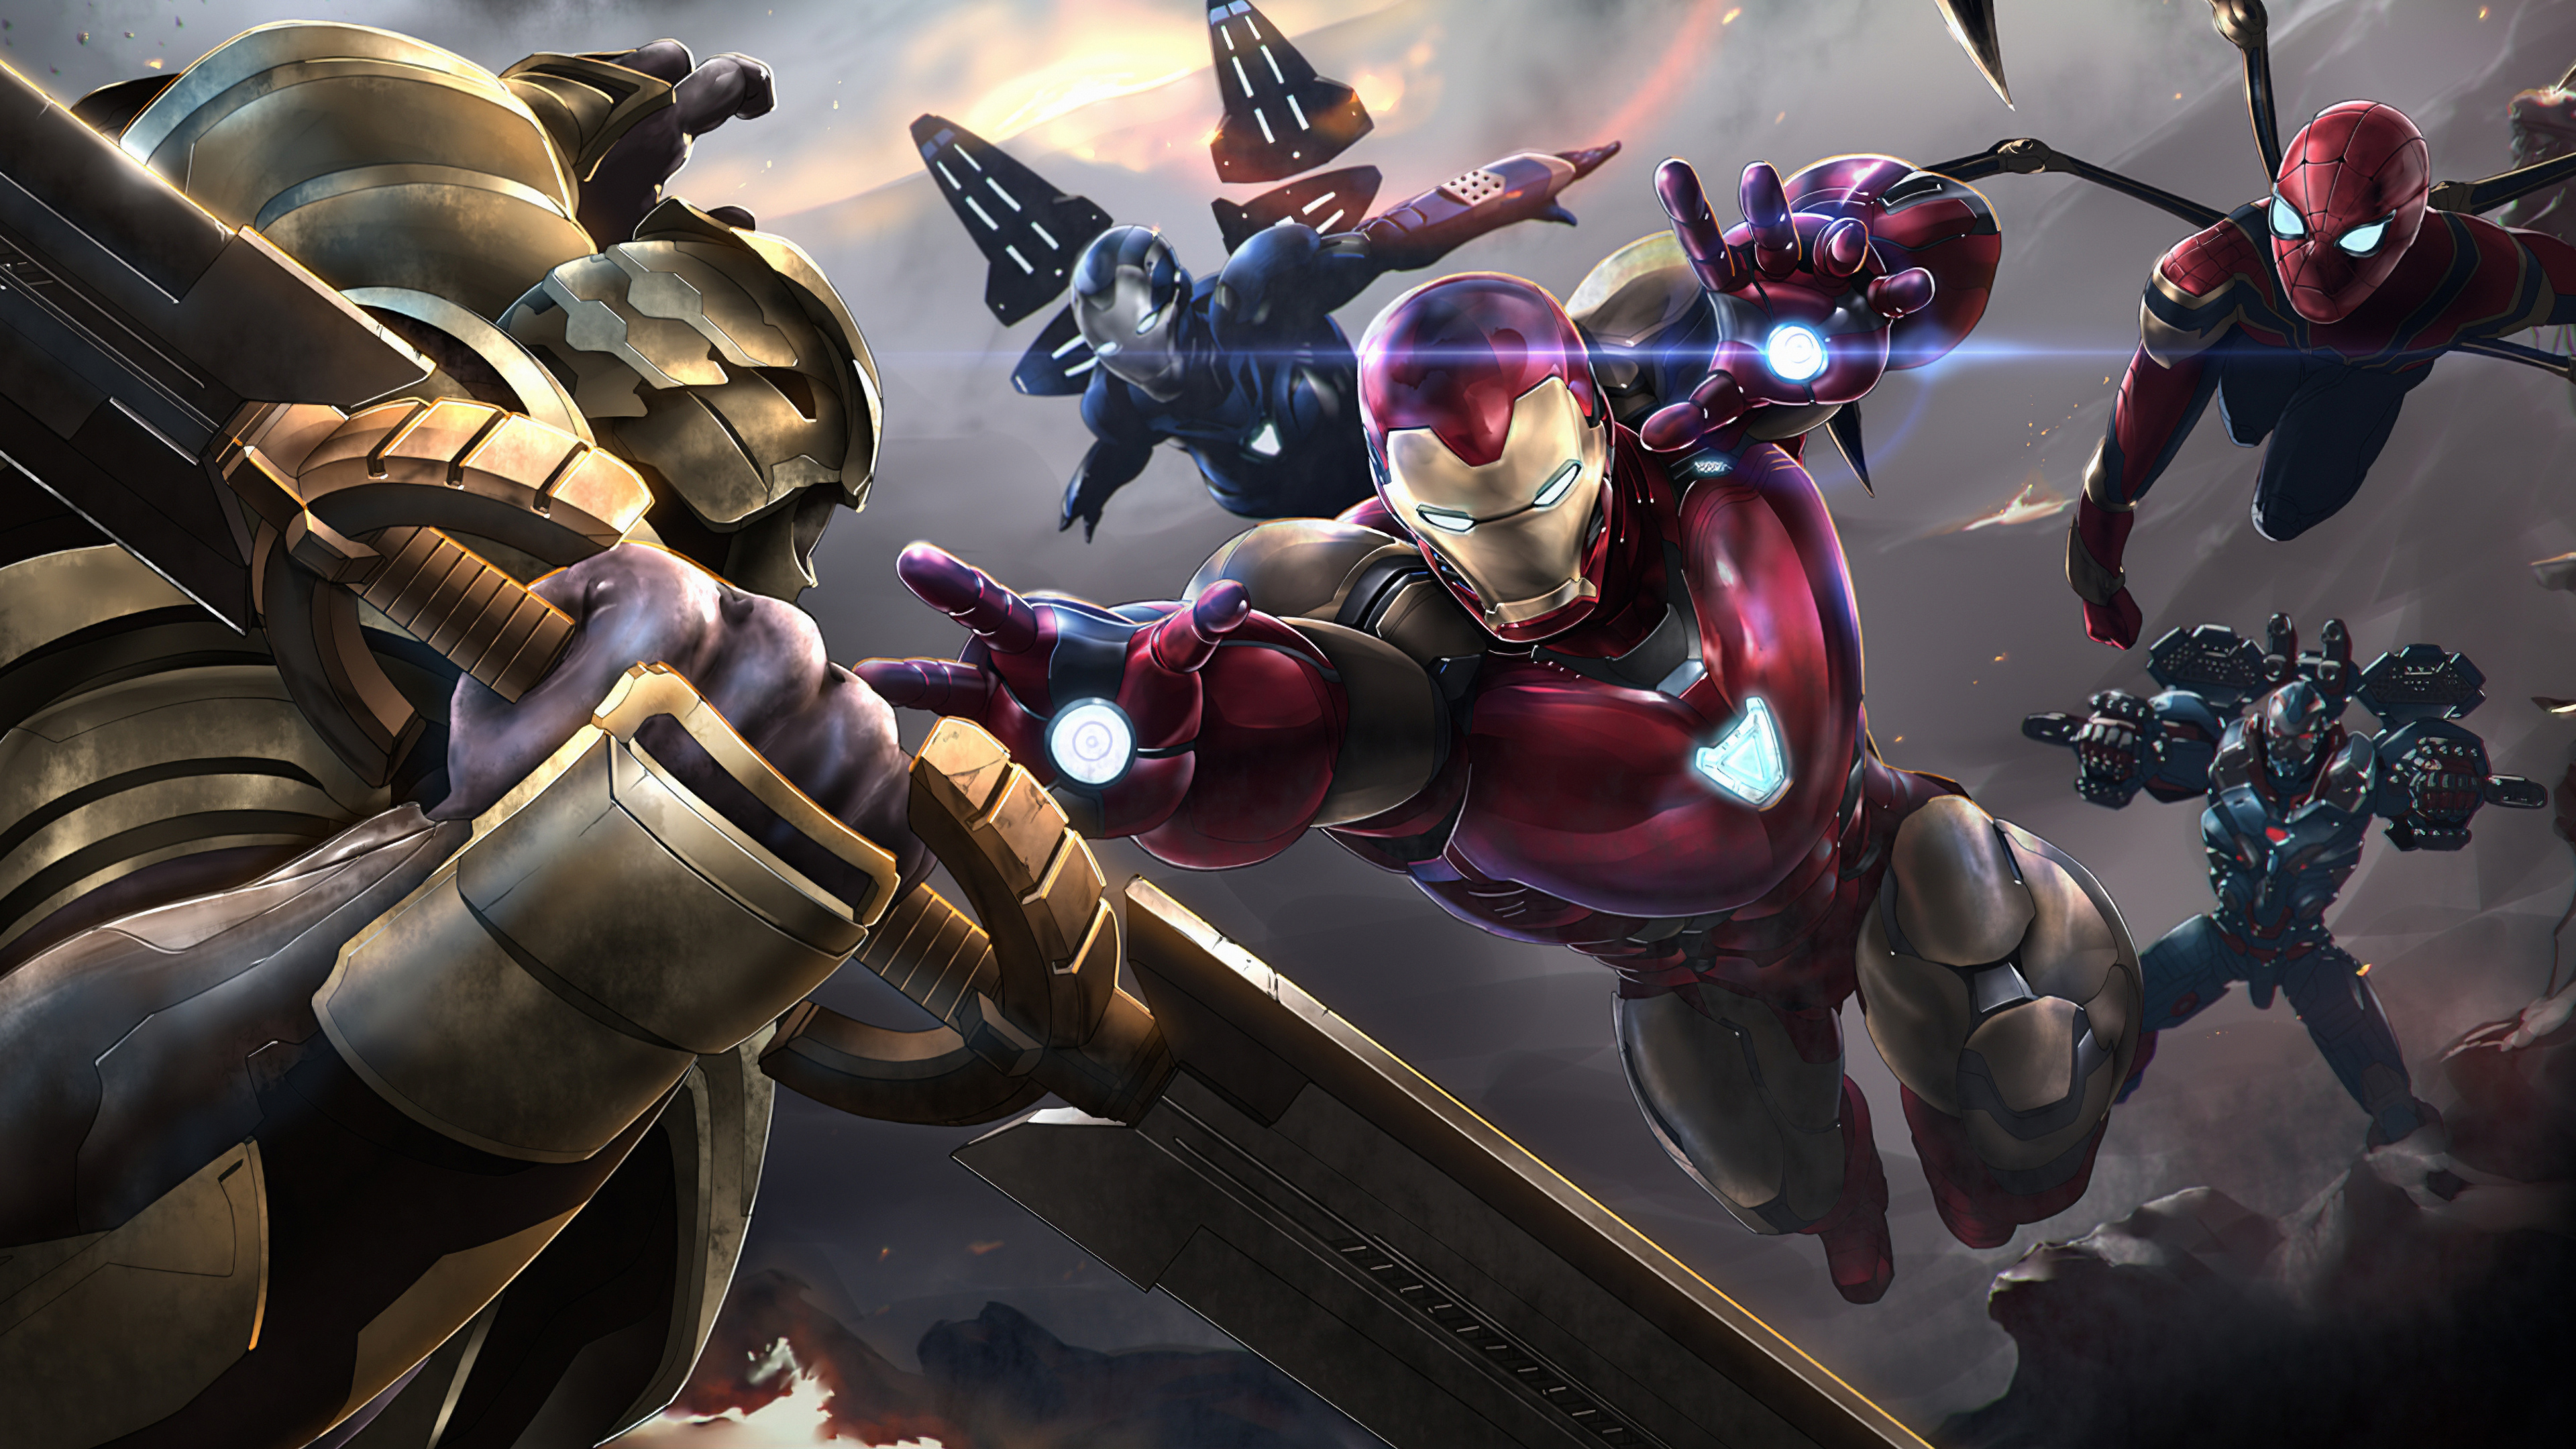 thanos vs iron man team 1572368225 - Thanos Vs Iron Man Team - thanos-wallpapers, superheroes wallpapers, iron man wallpapers, hd-wallpapers, artwork wallpapers, 4k-wallpapers